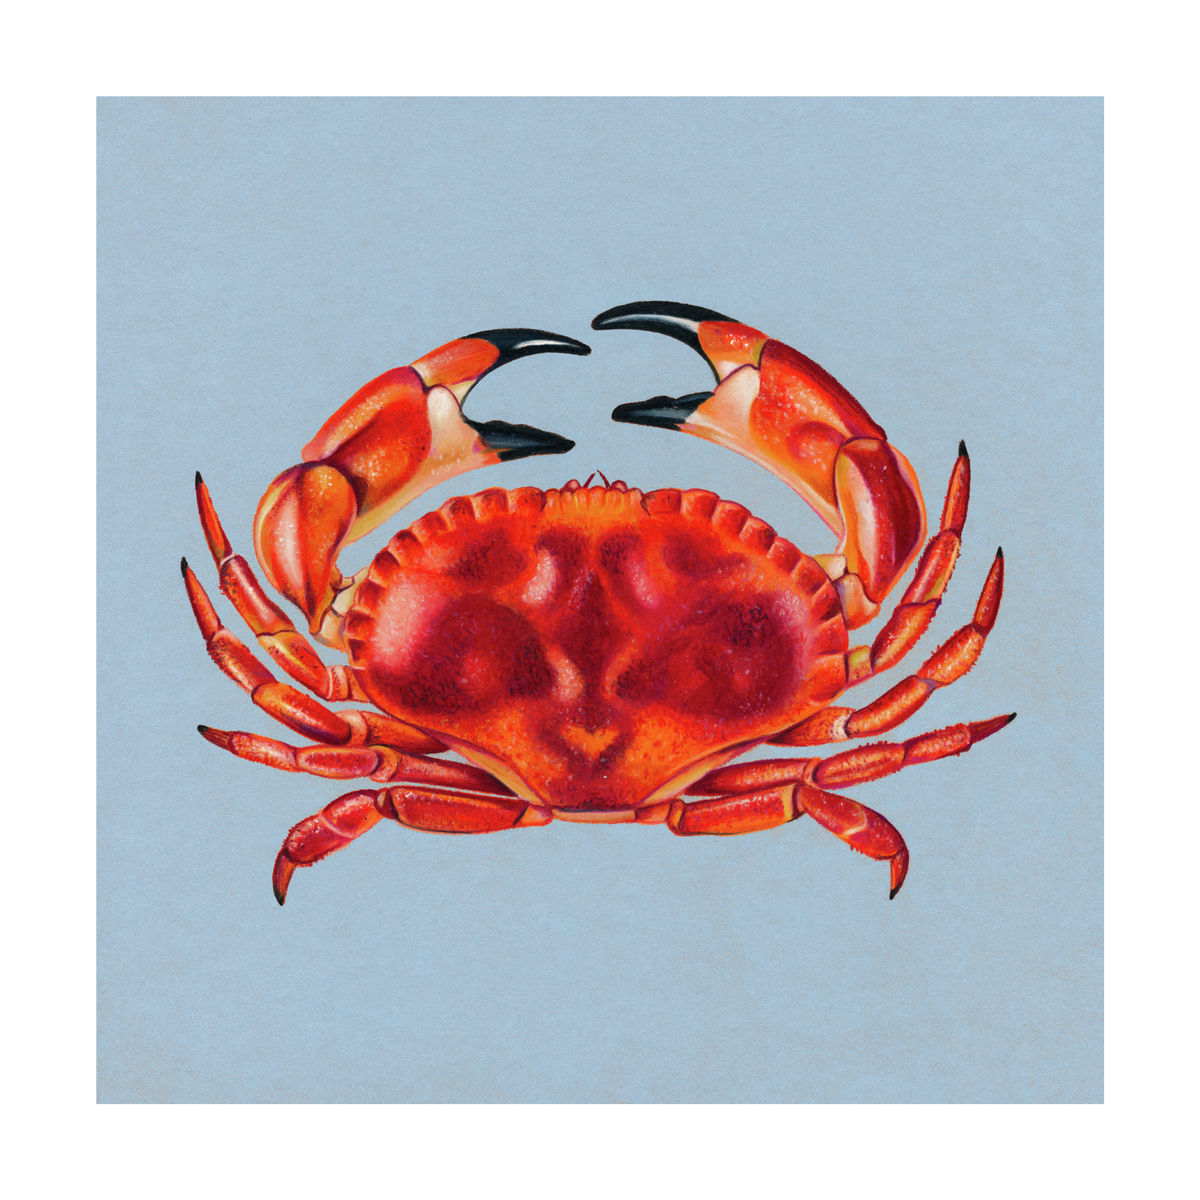 An illustration of a crab (Colour Pencil on Card) - Giclee Print